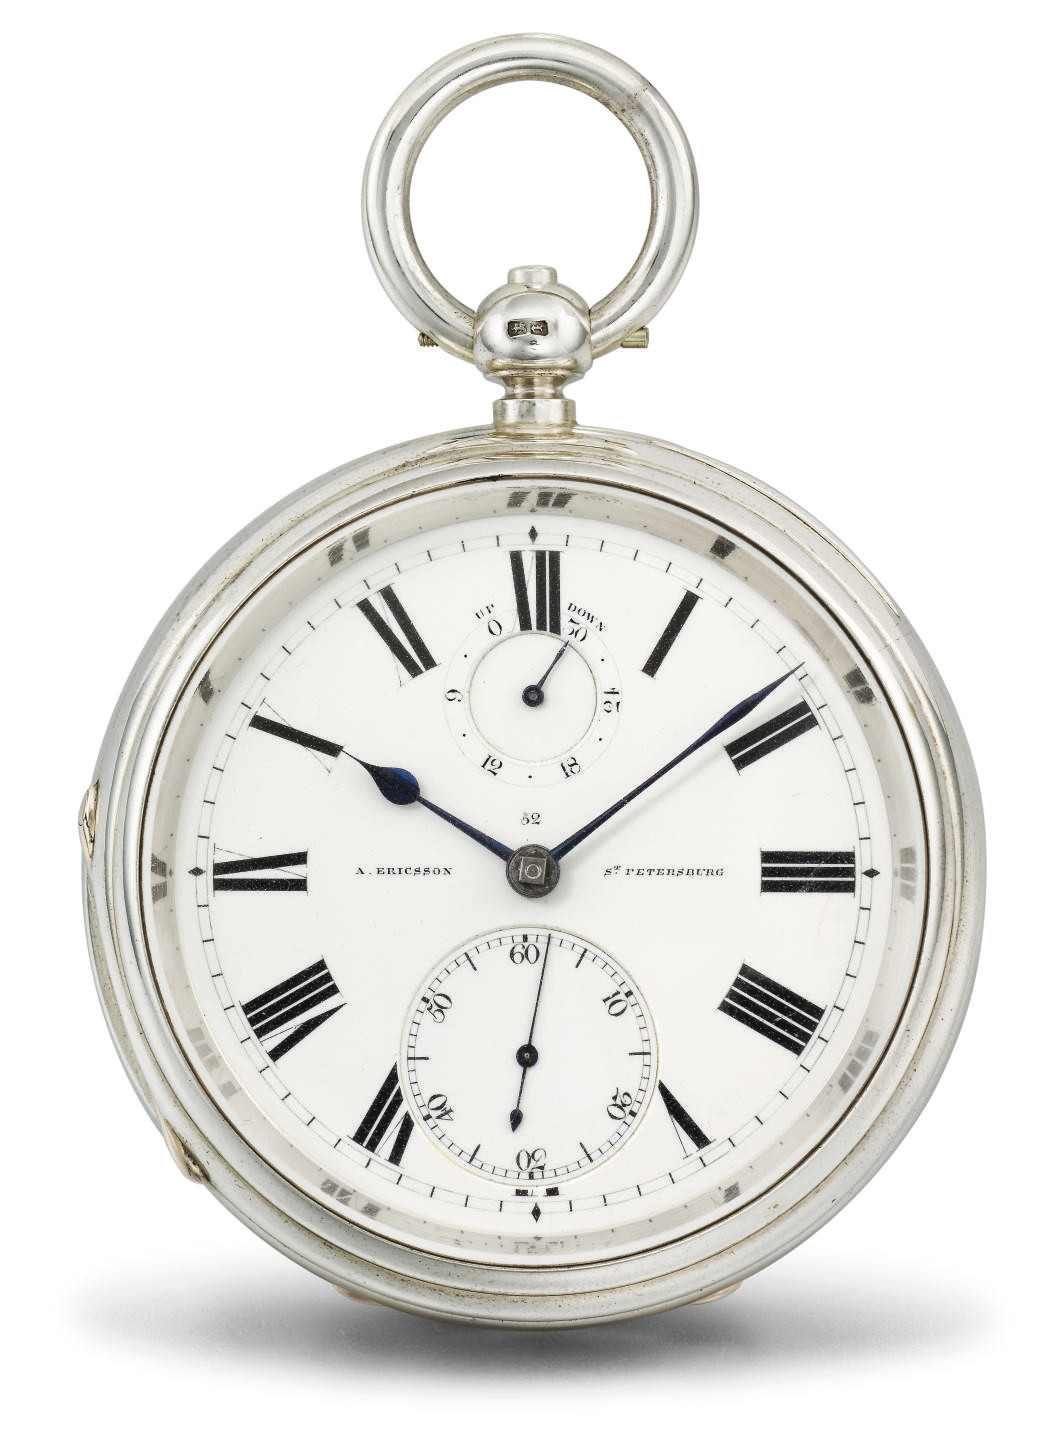 Victor Kullberg, made for A. Ericsson. A silver openface keywound pocket chronometer with power reserve